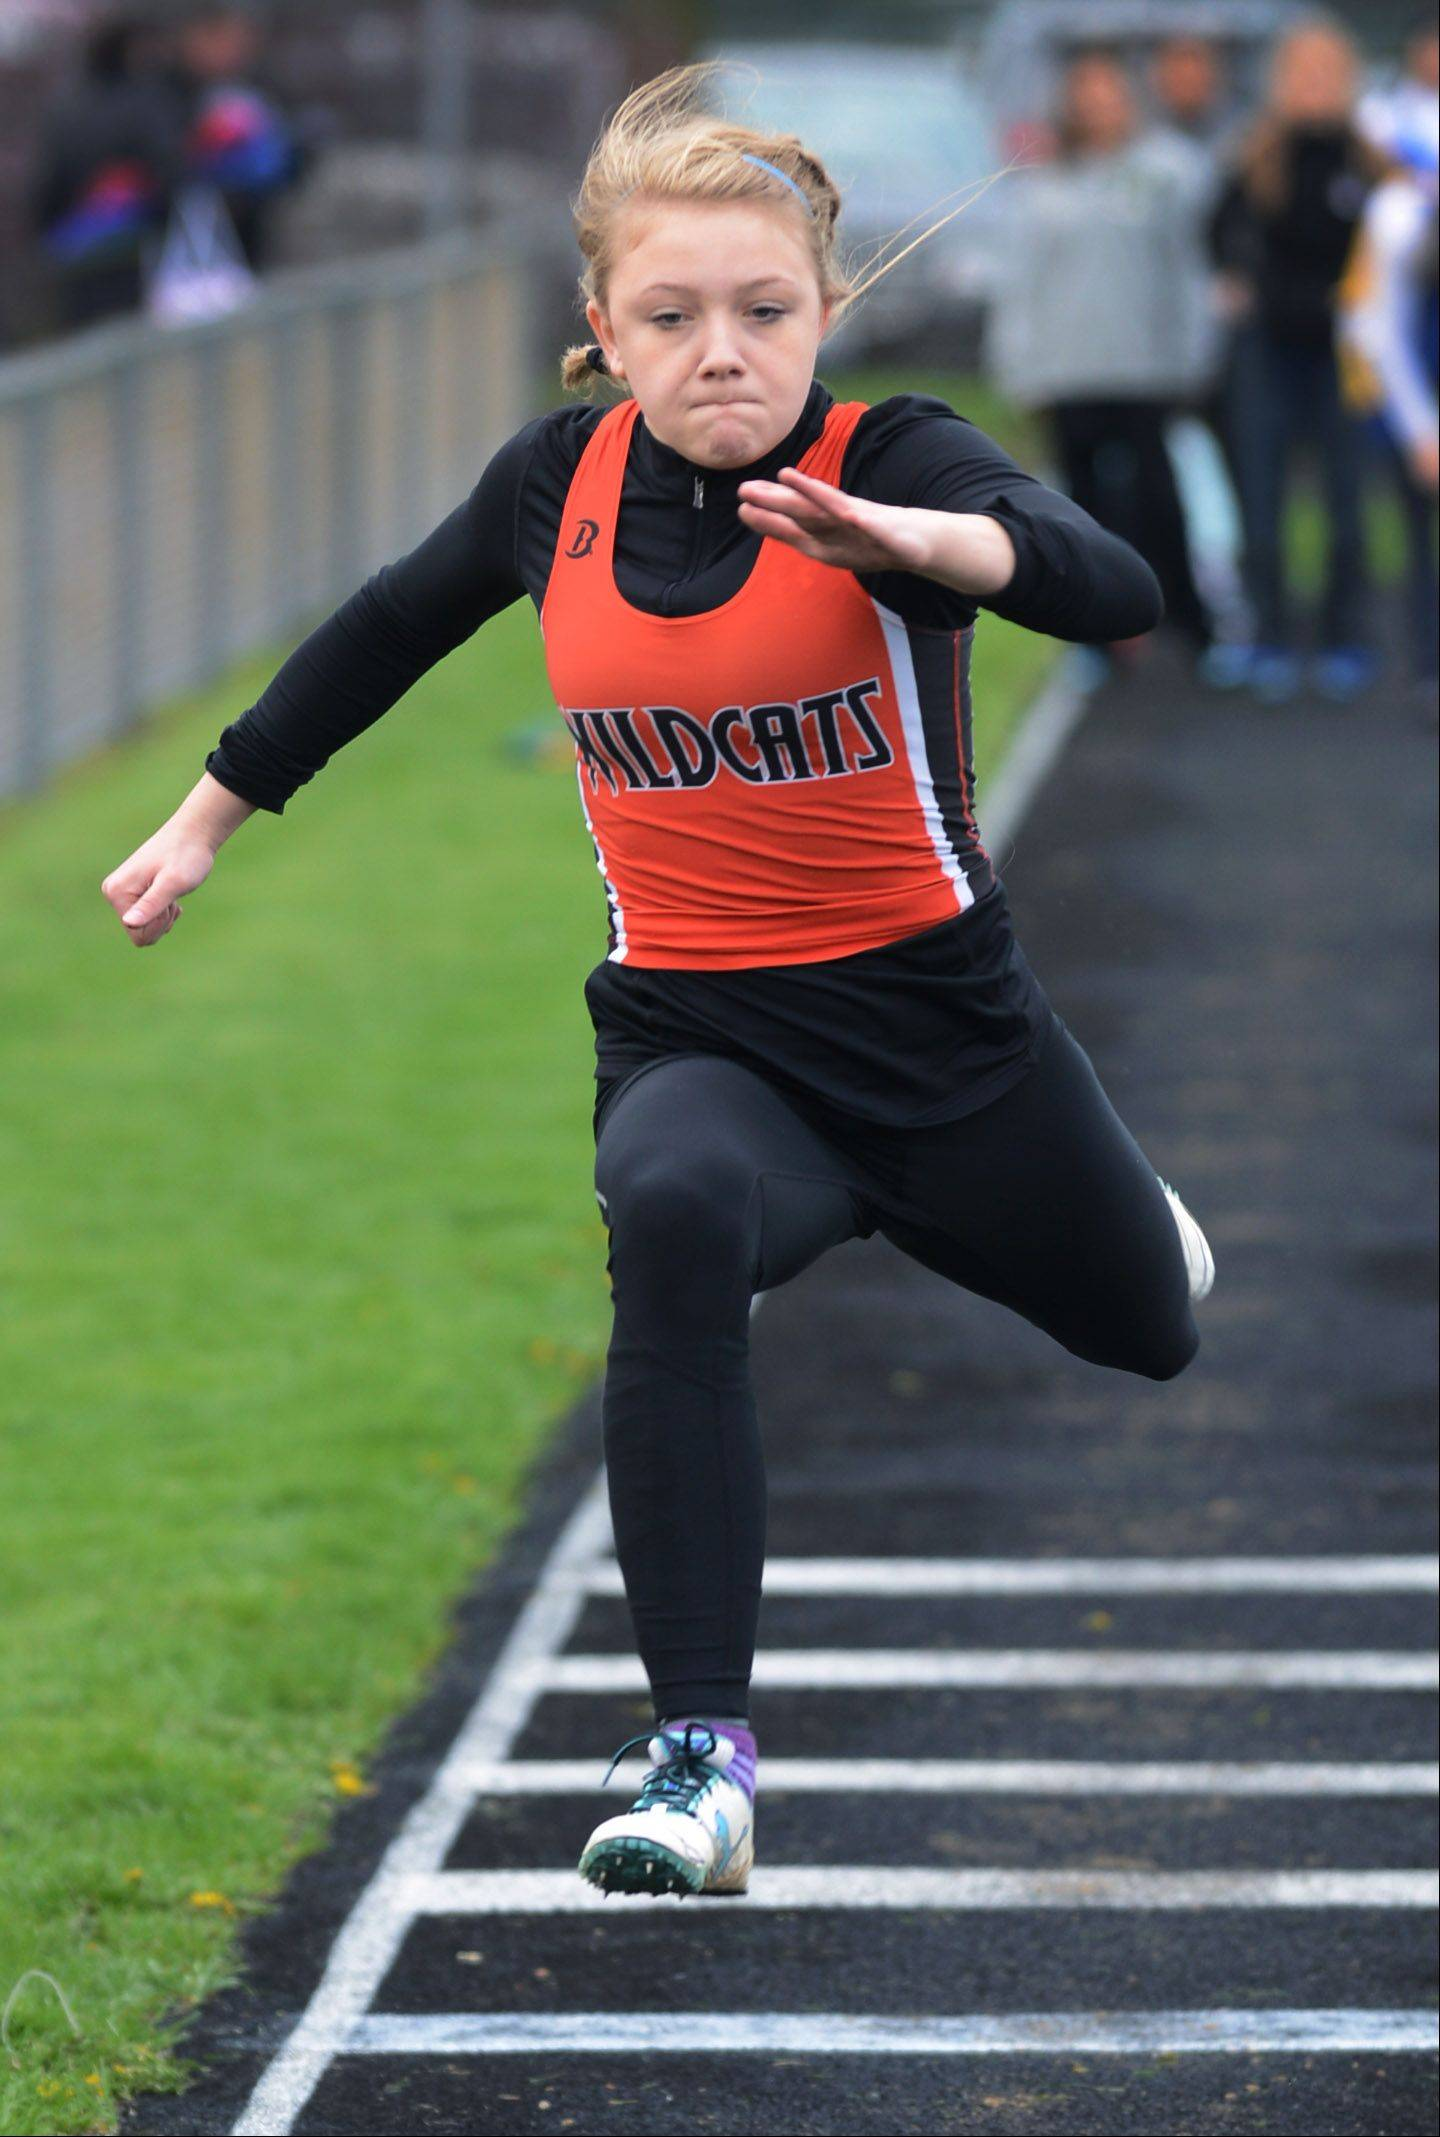 Libertyville's Rachel Metcalf takes off during the triple jump competition during the North Suburban Conference girls track meet Thursday at Stevenson High School in Lincolnshire.